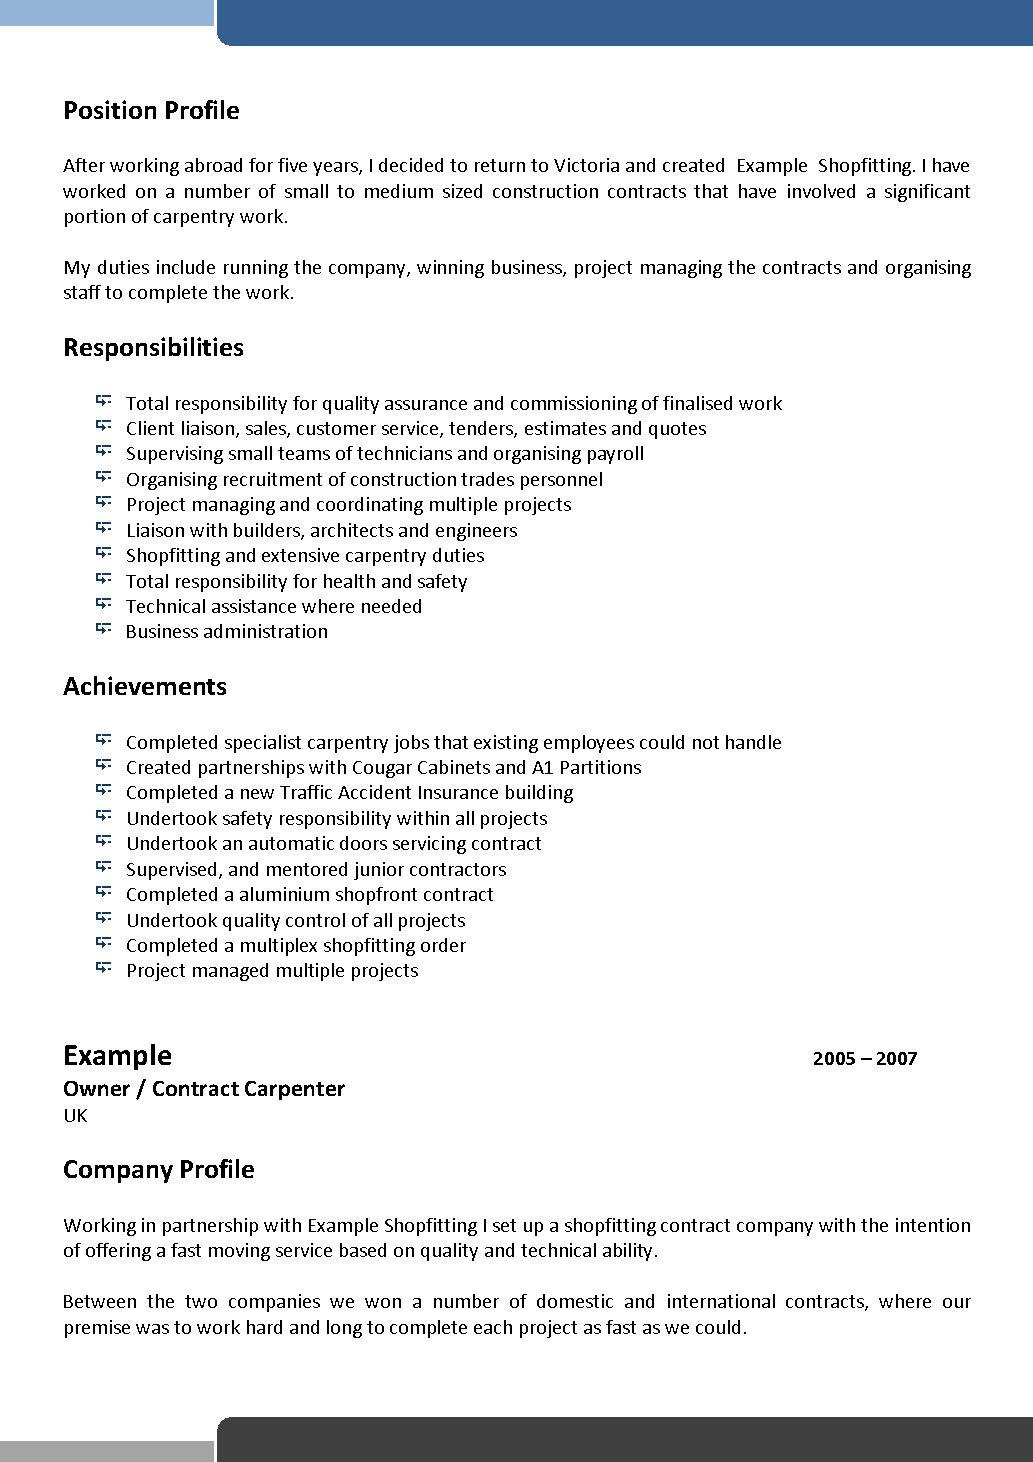 medical student essay competition uk mla format example essay